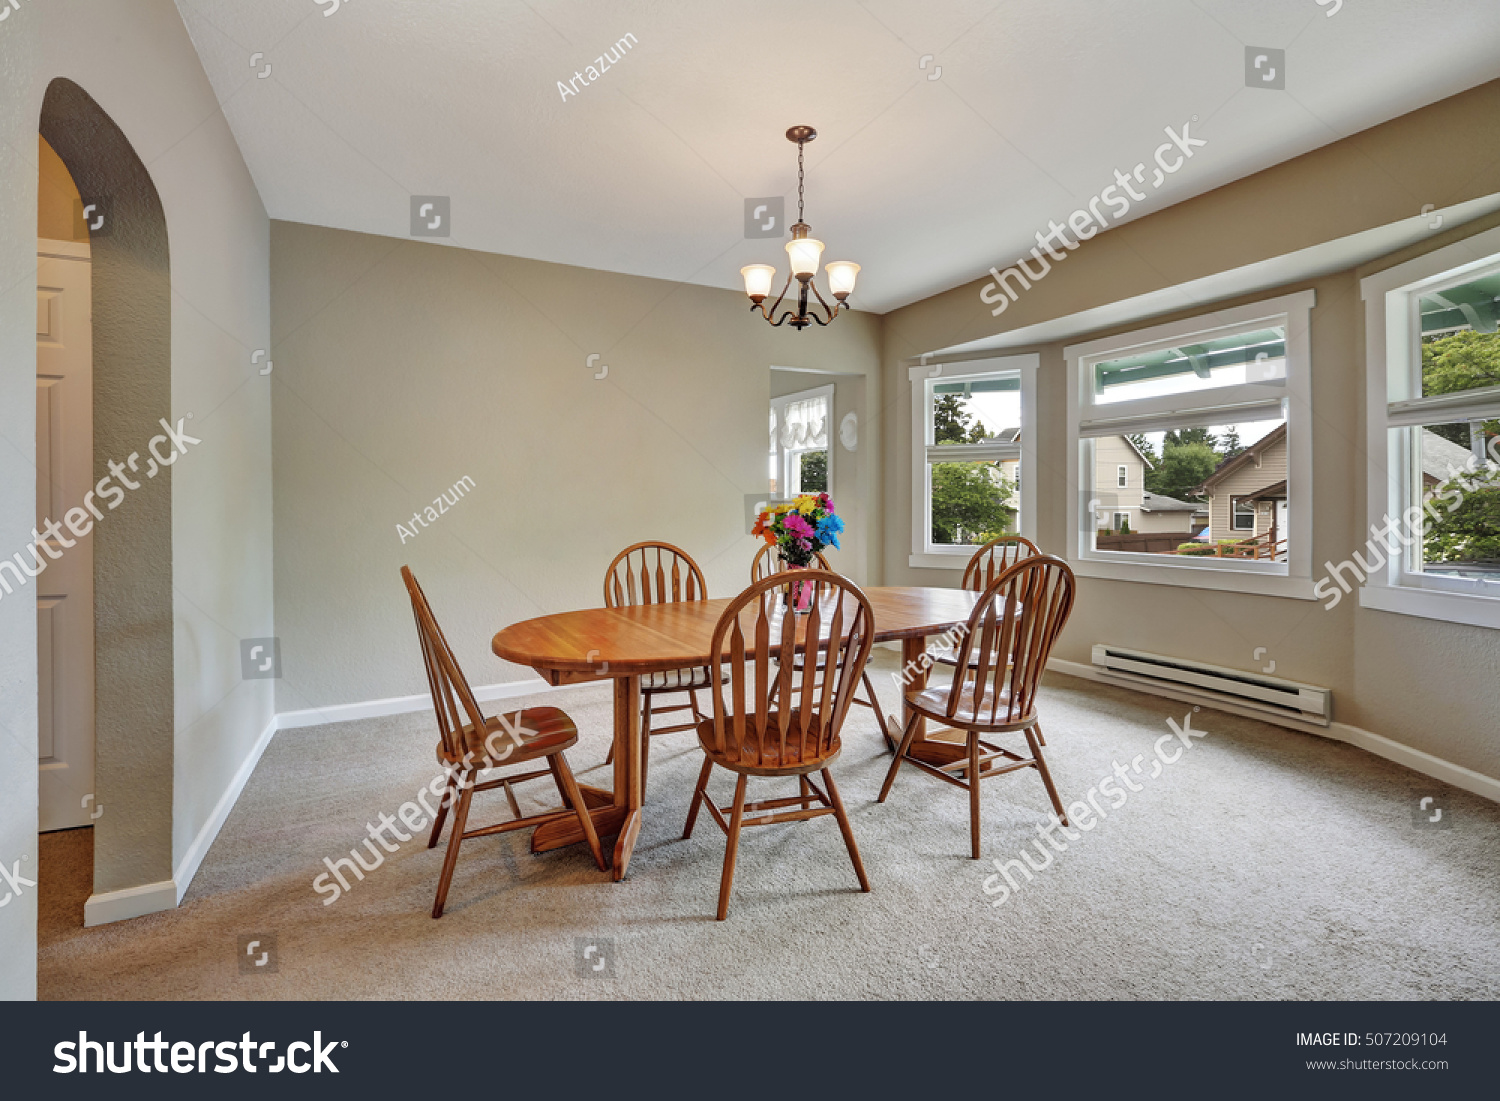 Beige Dining Room Interior With Round Wall Carpet Floor Wooden